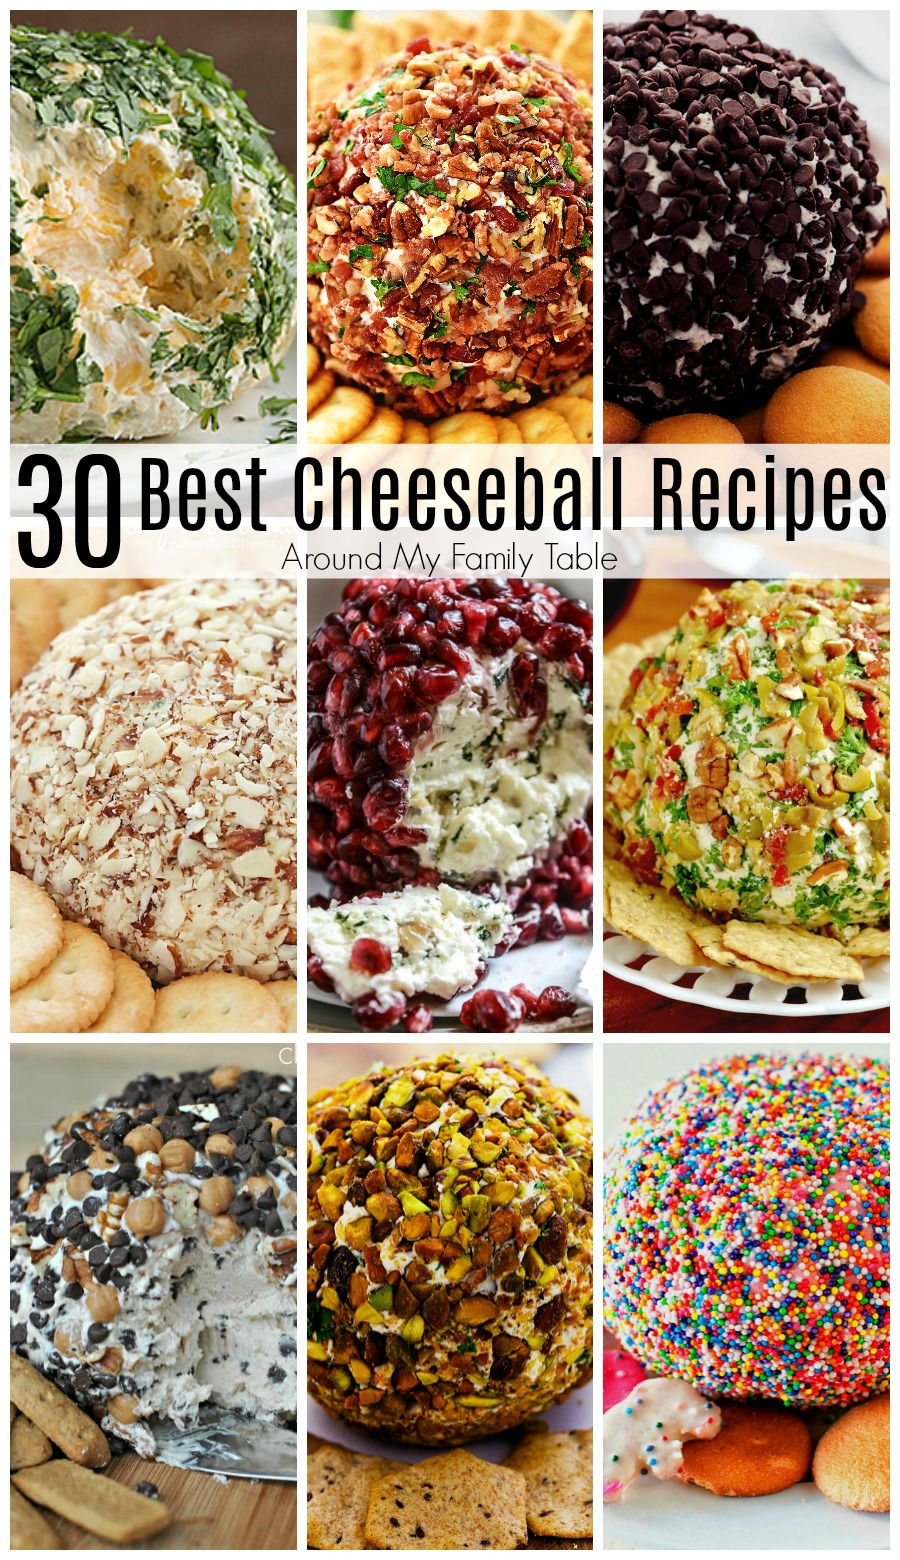 30 of the best cheeseball recipes, from appetizers to desserts, that are all you'll need for the perfect dish for your next party. #cheeseball